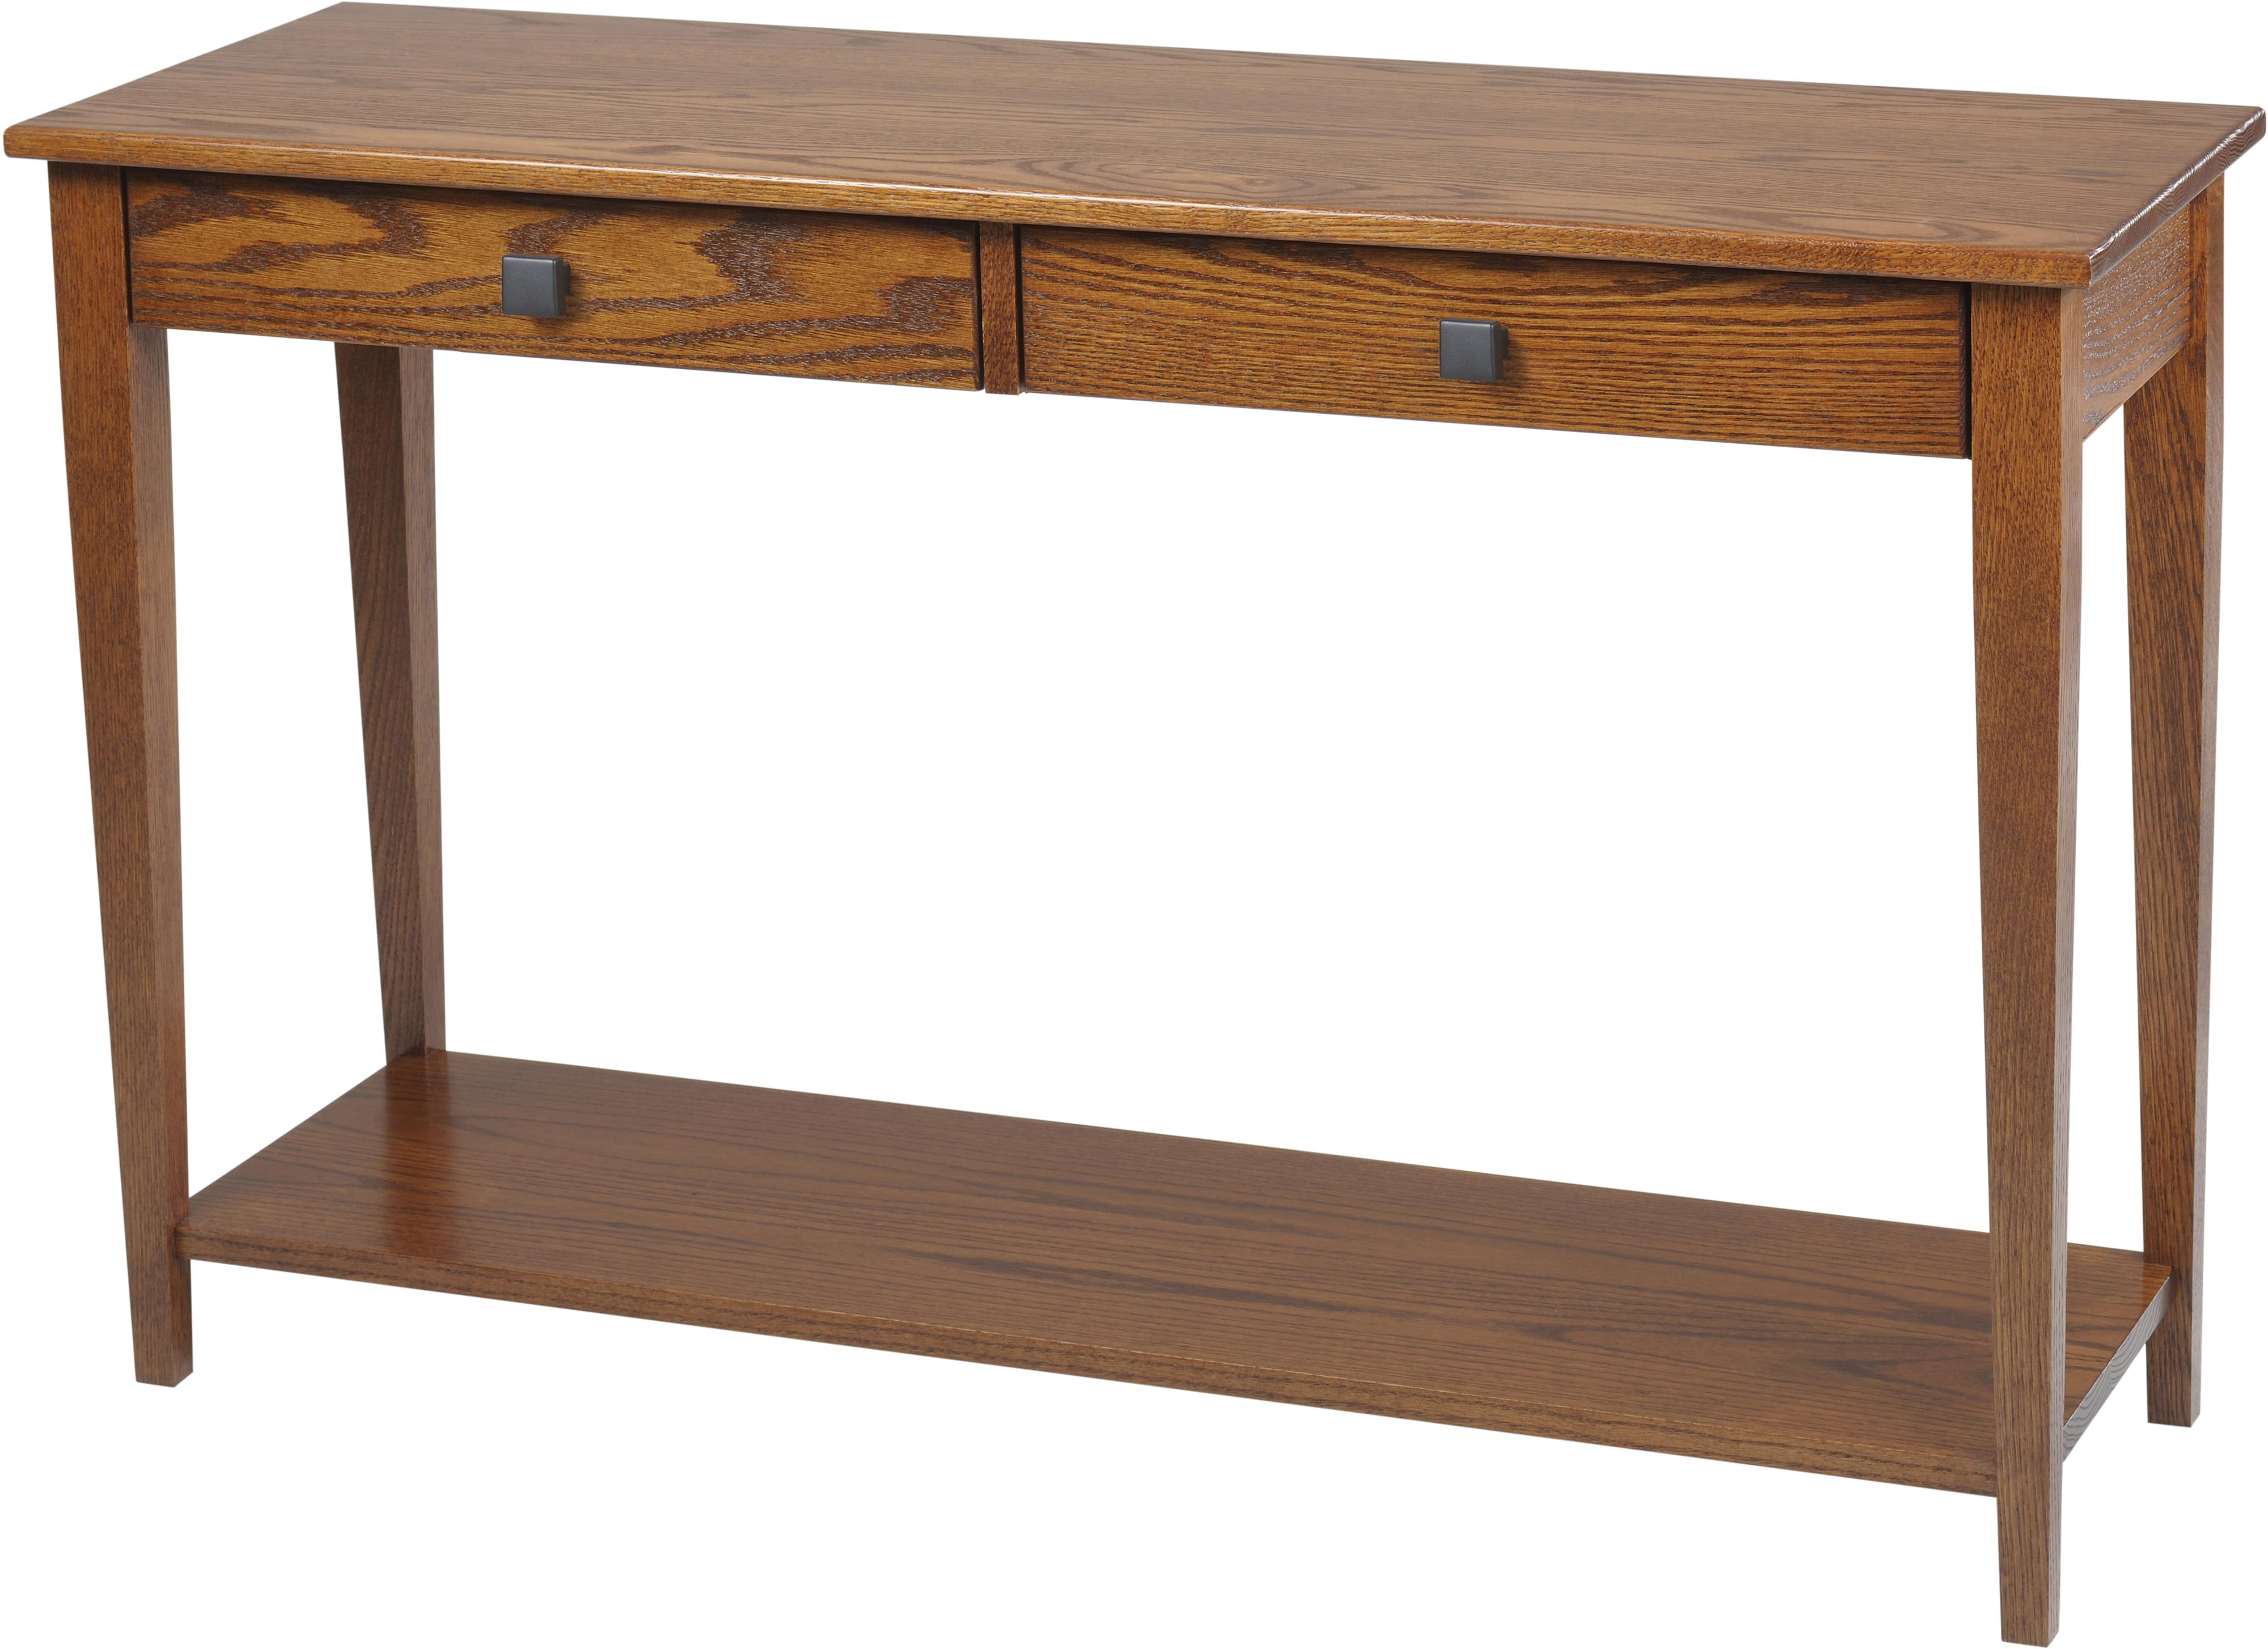 Woodland Shaker Hall Table with Shelf by Y & T Woodcraft at Saugerties Furniture Mart